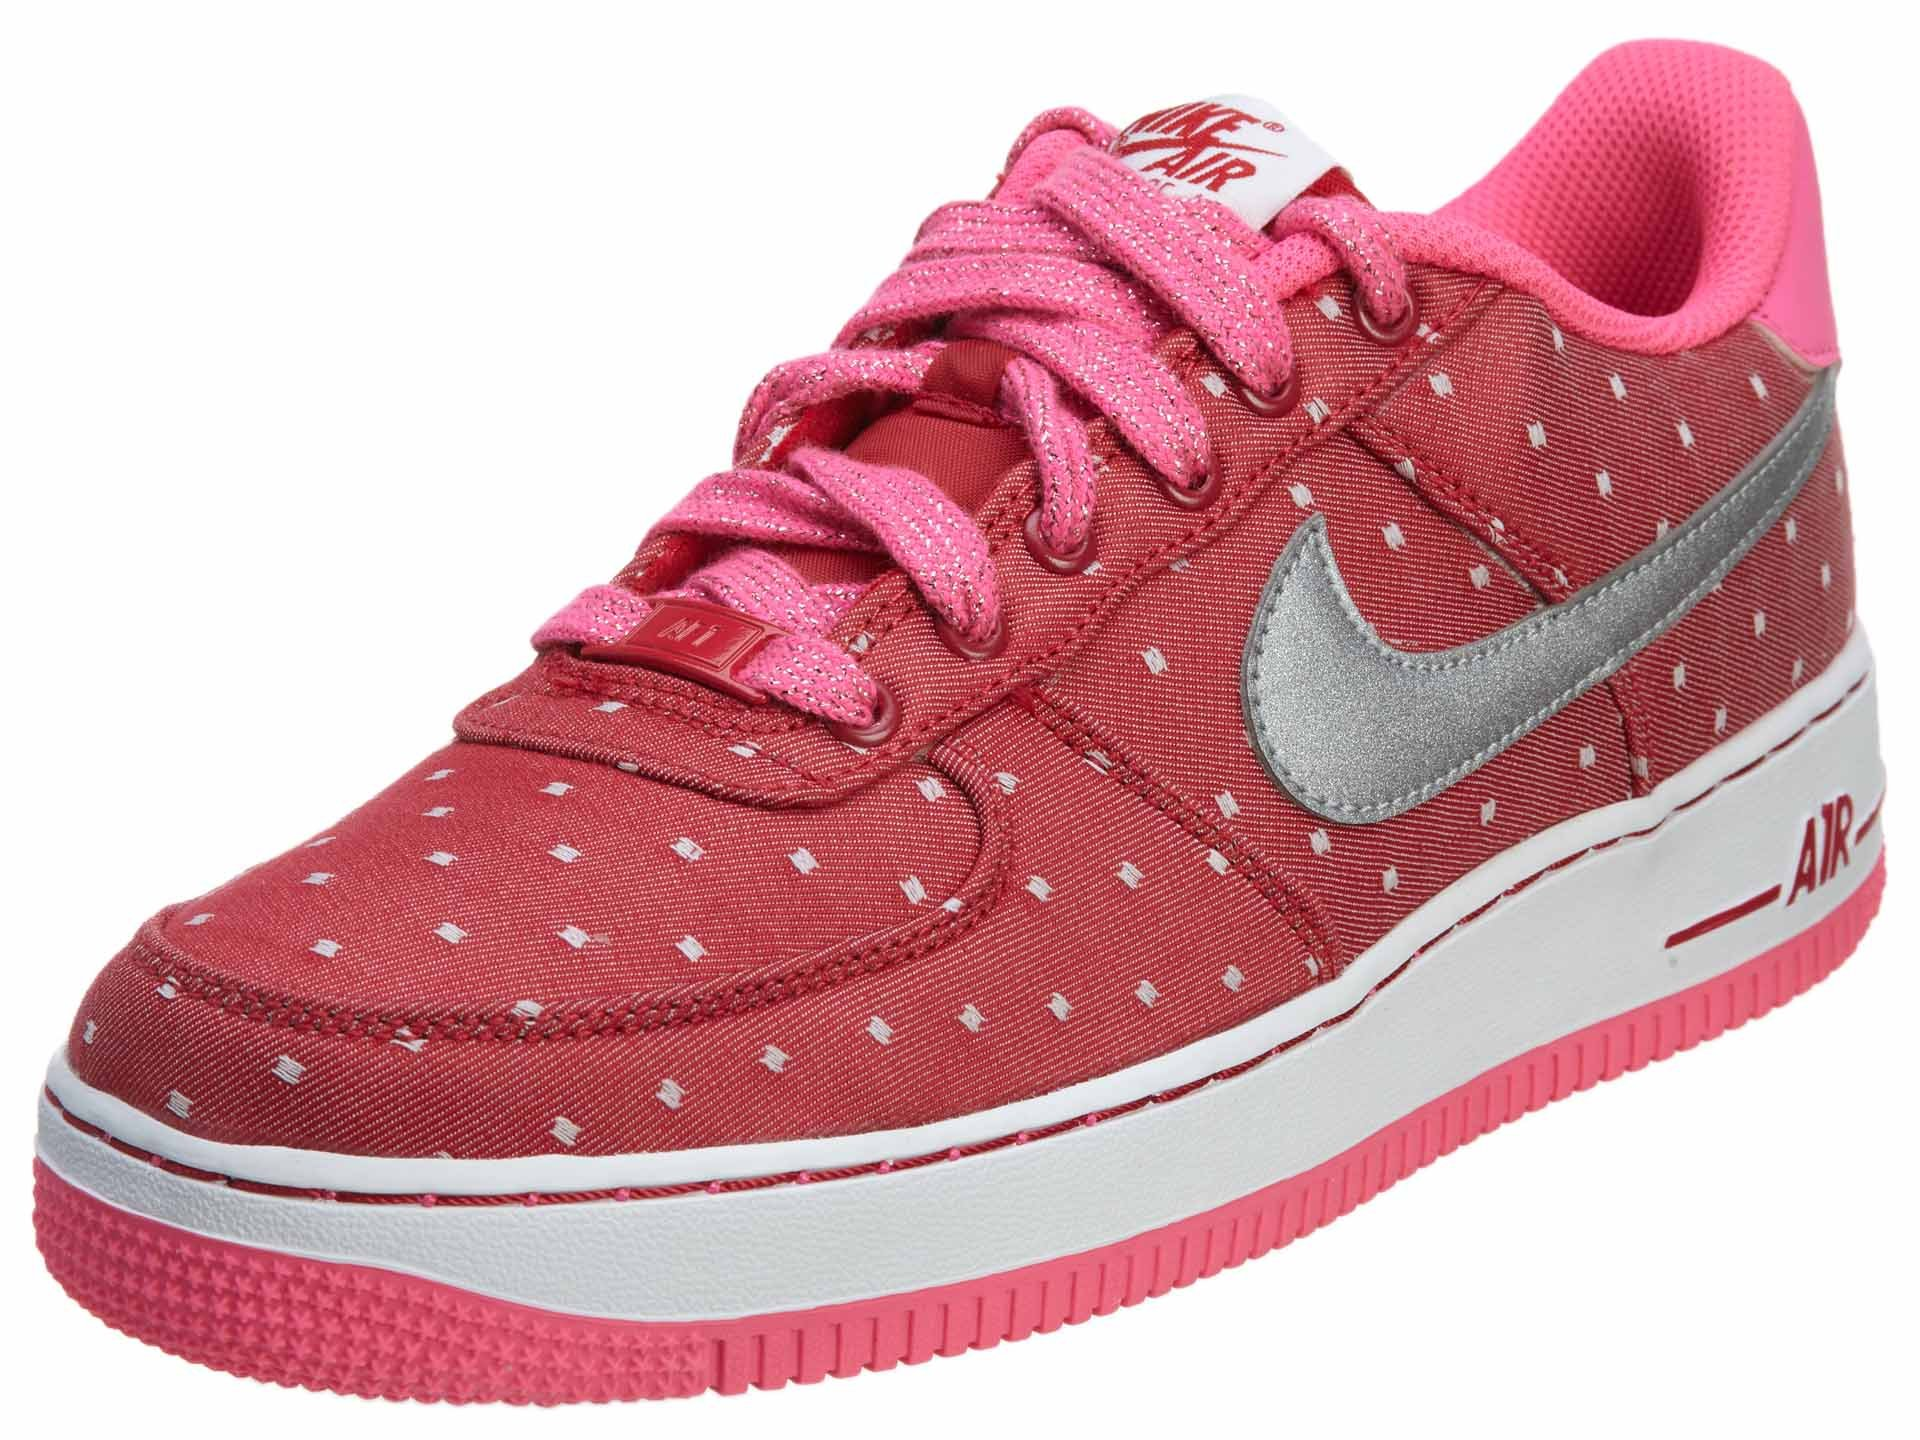 Nike Air Force 1 Big Kids Girls Court Sneakers Shoes Pink Size